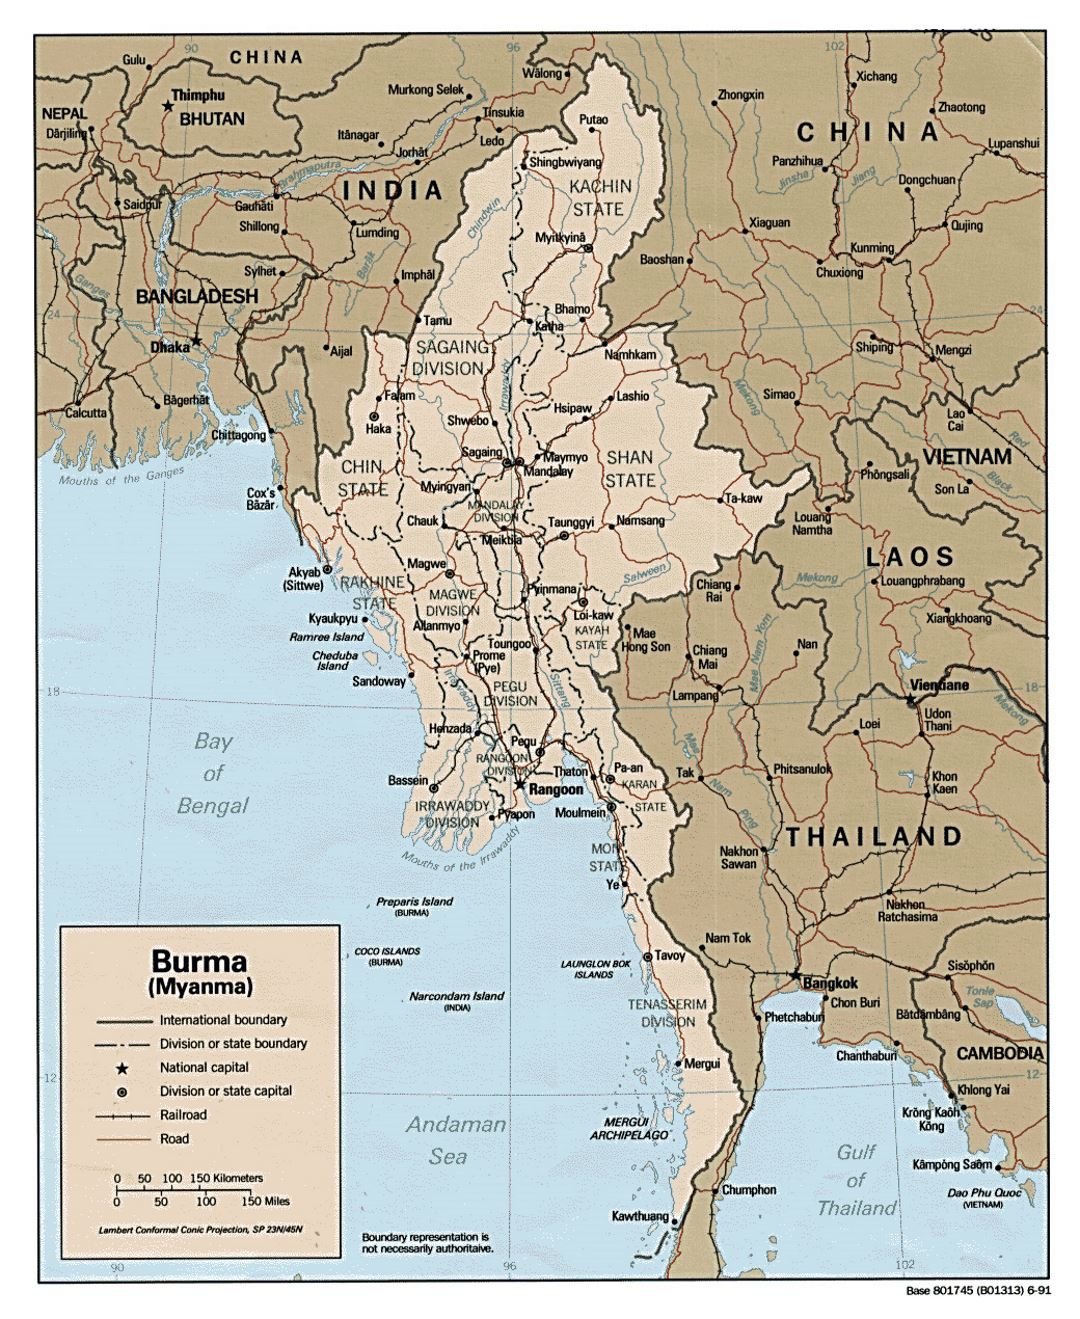 Detailed political and administrative map of Burma (Myanmar) - 1991